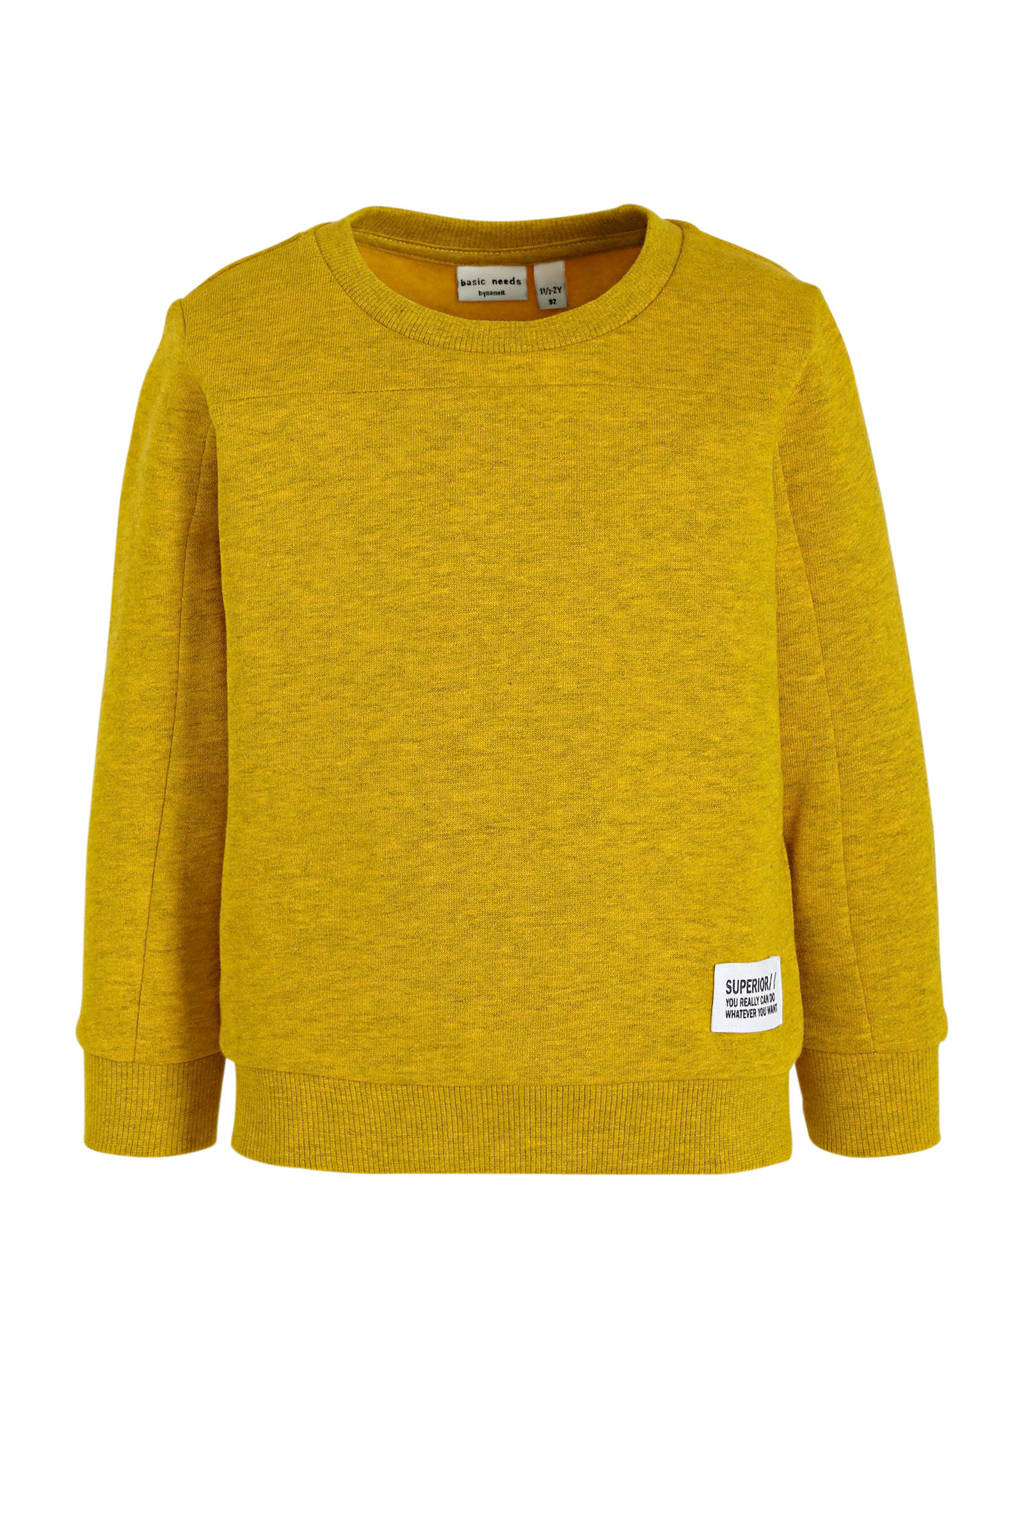 NAME IT MINI sweater Van geel, Geel